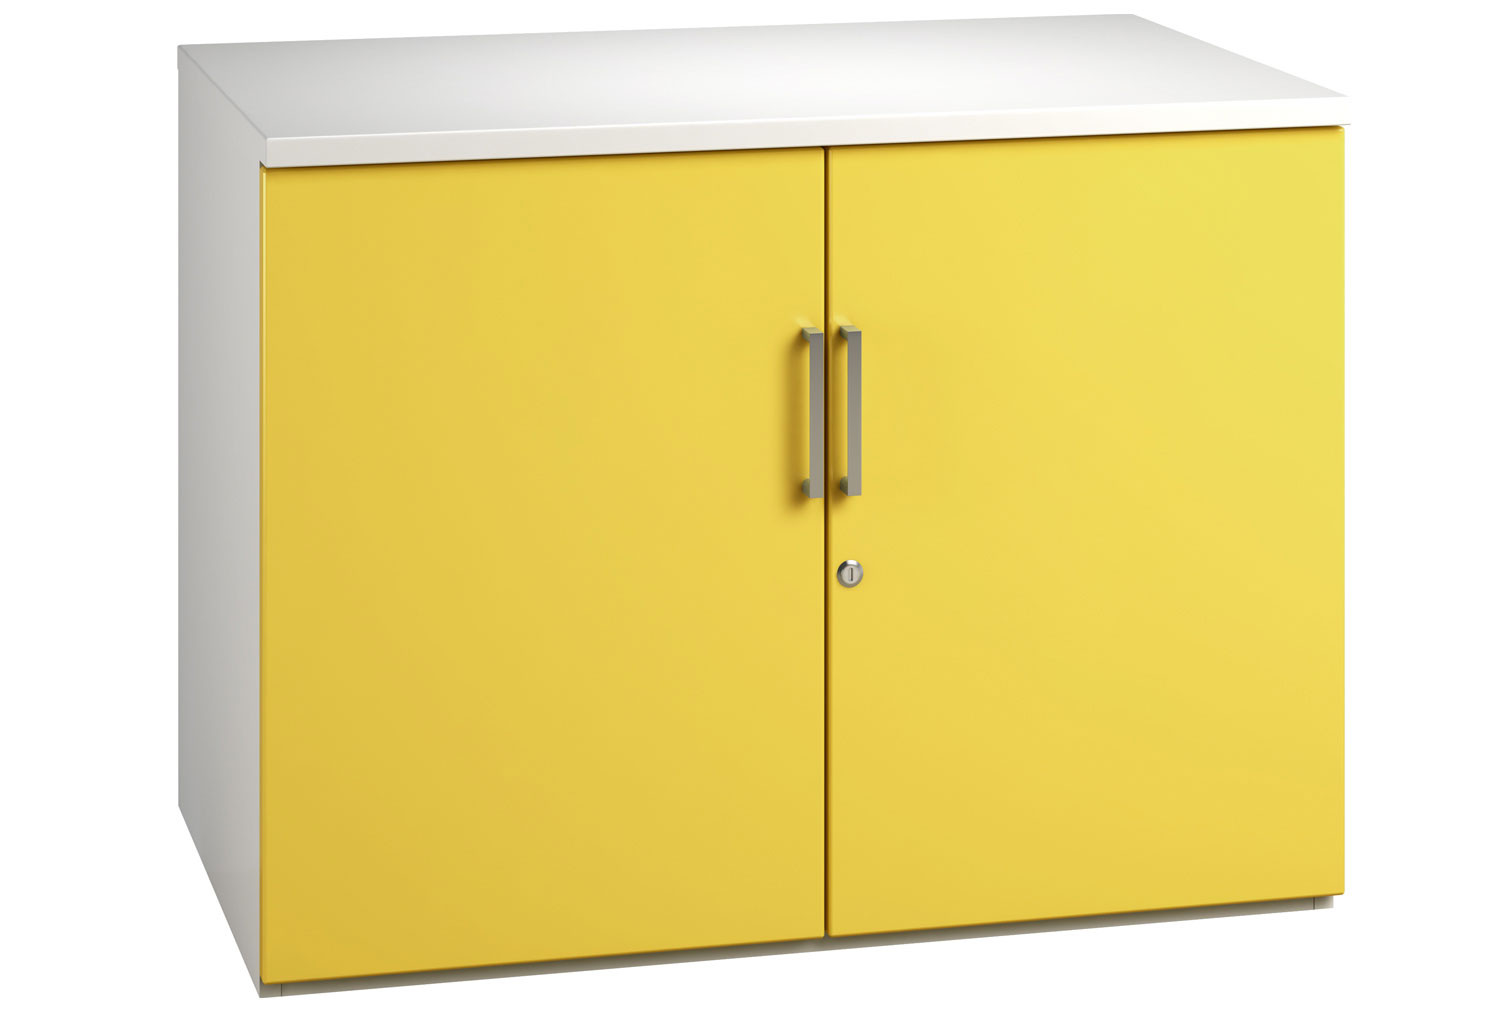 Solero 1 Shelf Cupboard (Yellow)